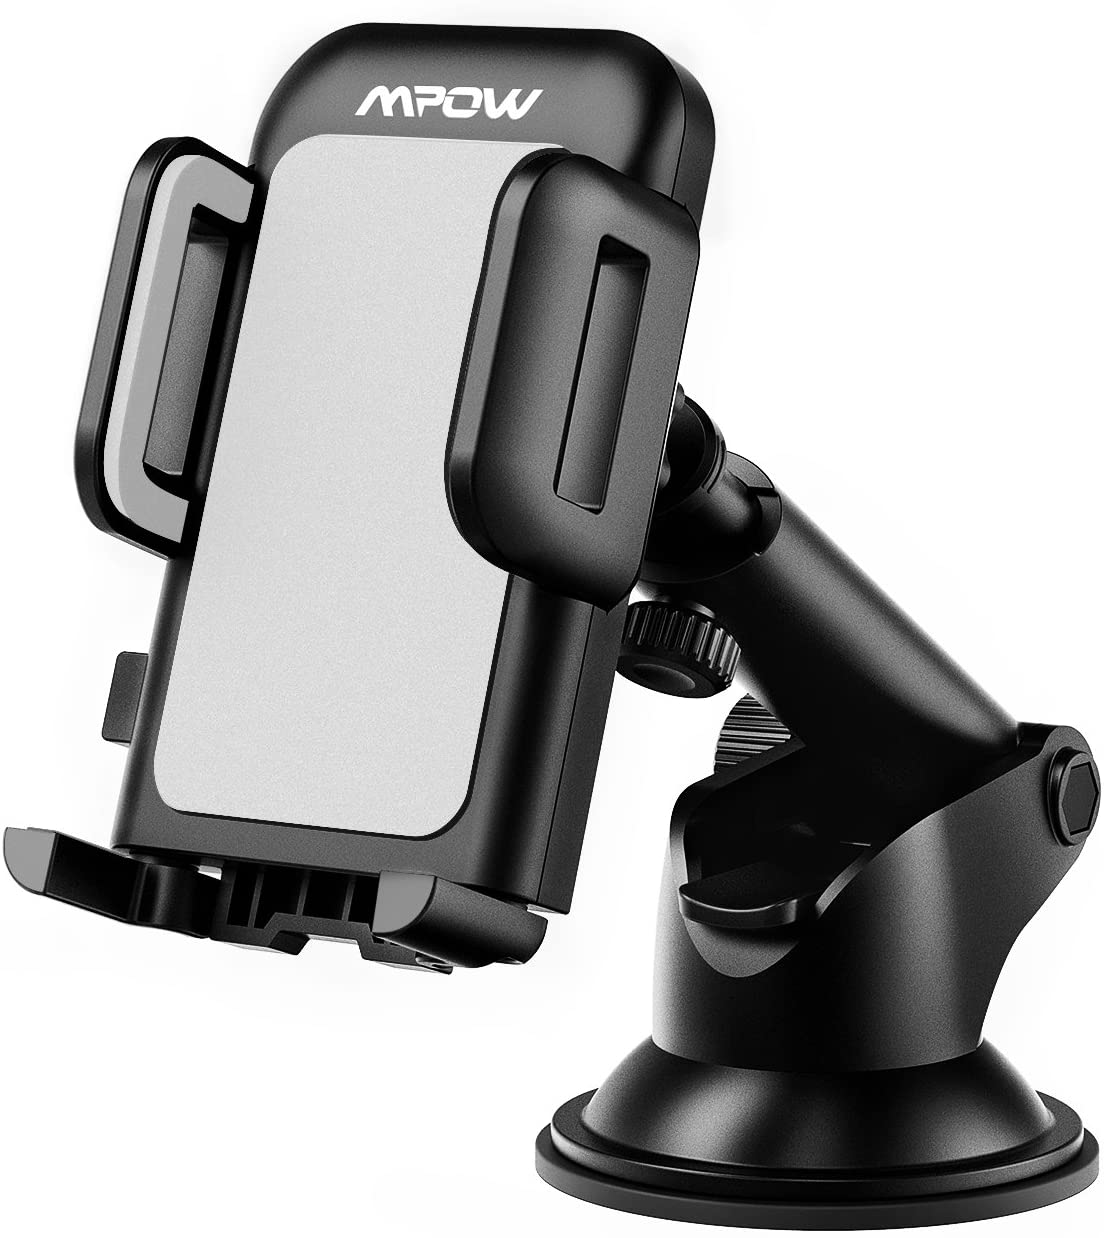 mpow-car-phone-mount-review